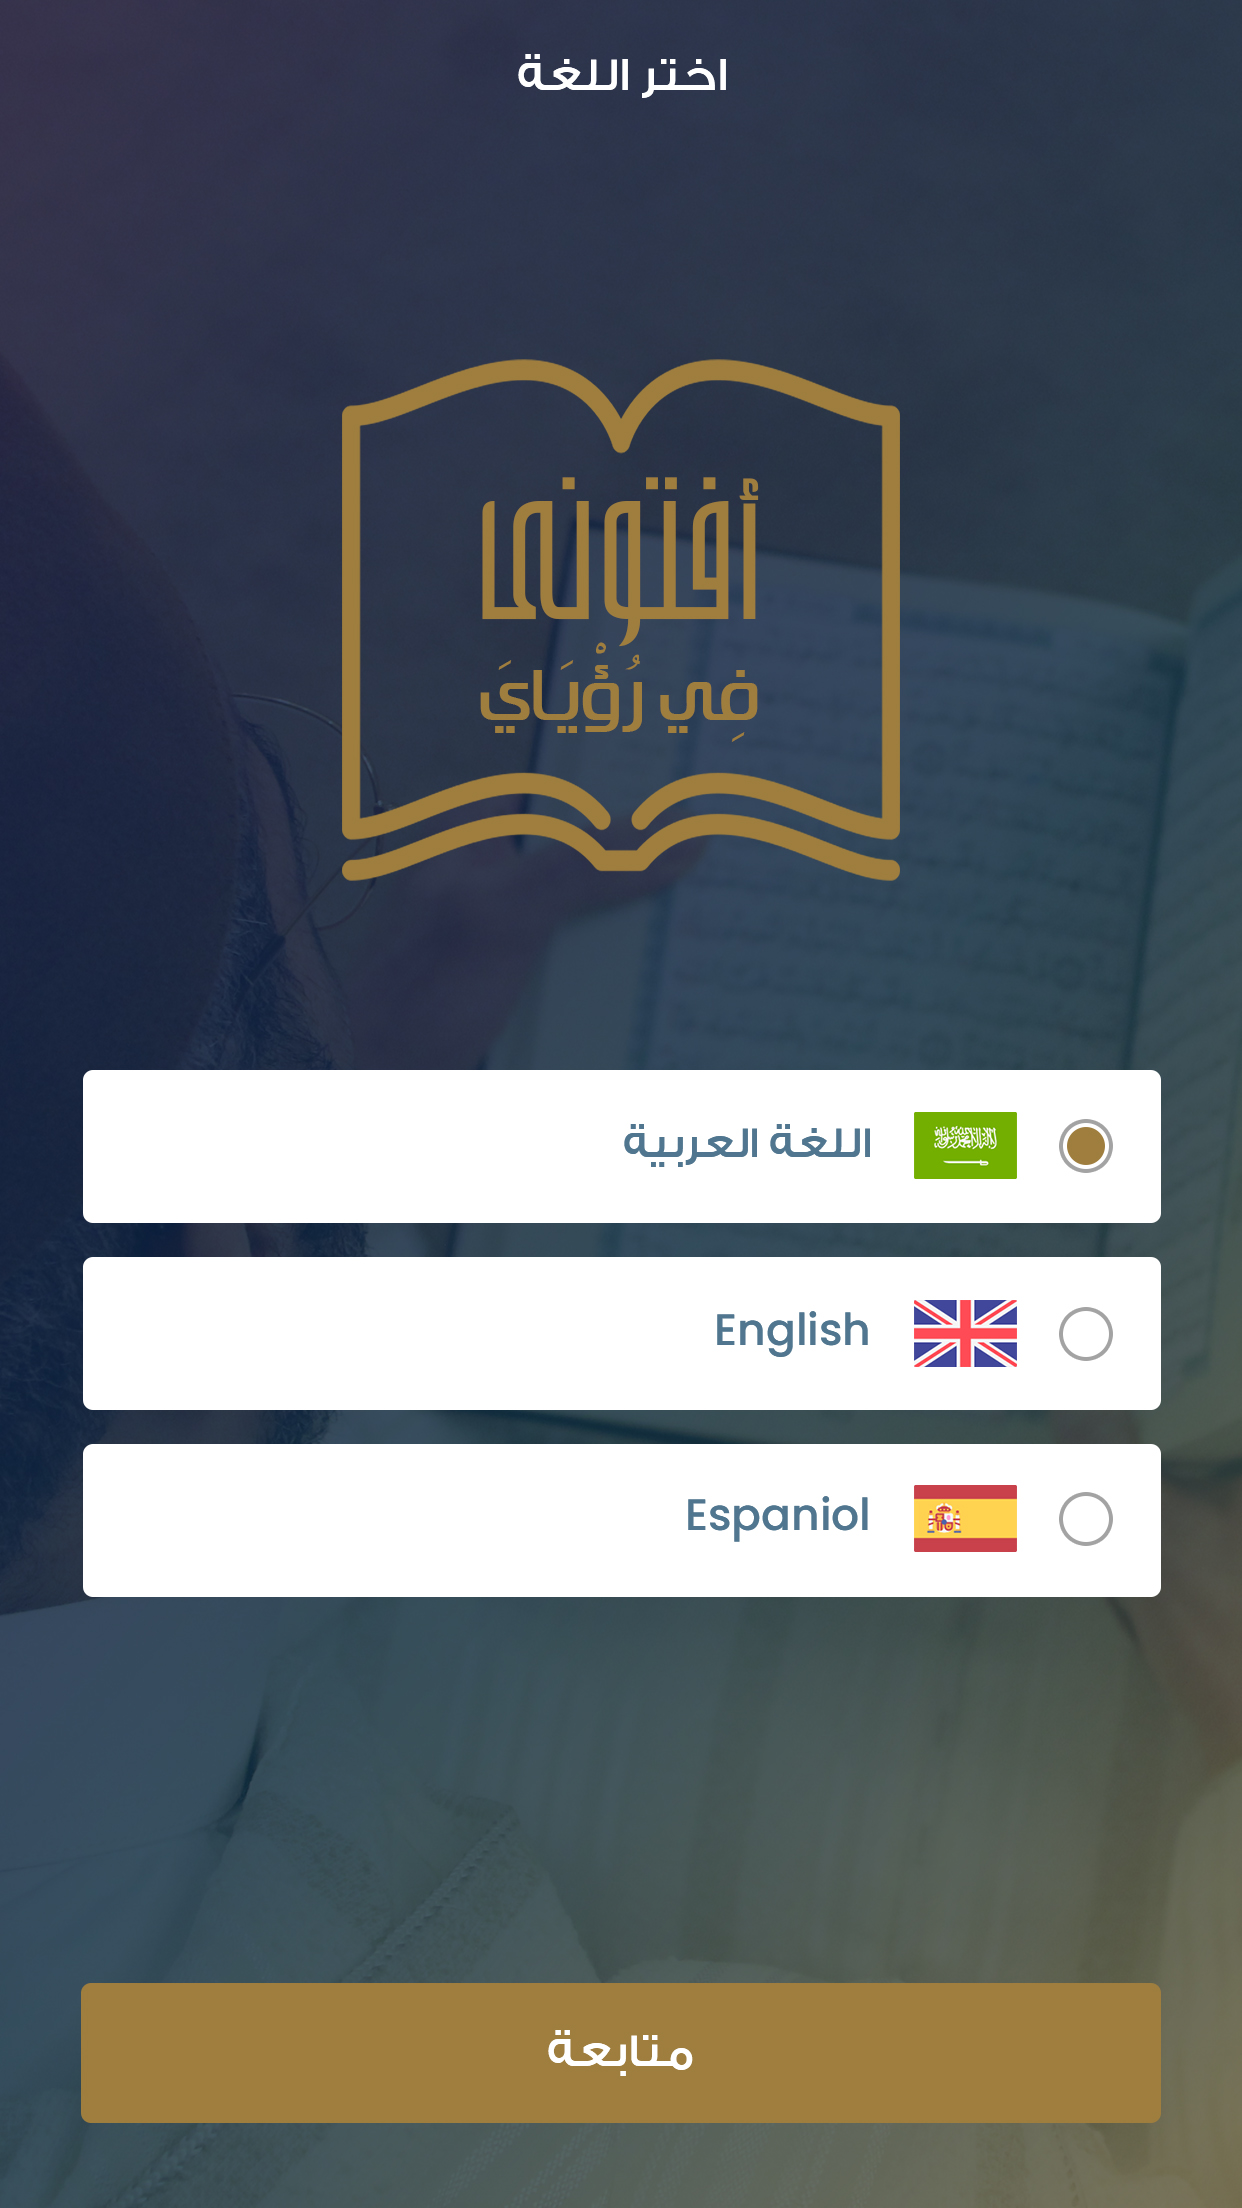 mobile app design with multilingual feature